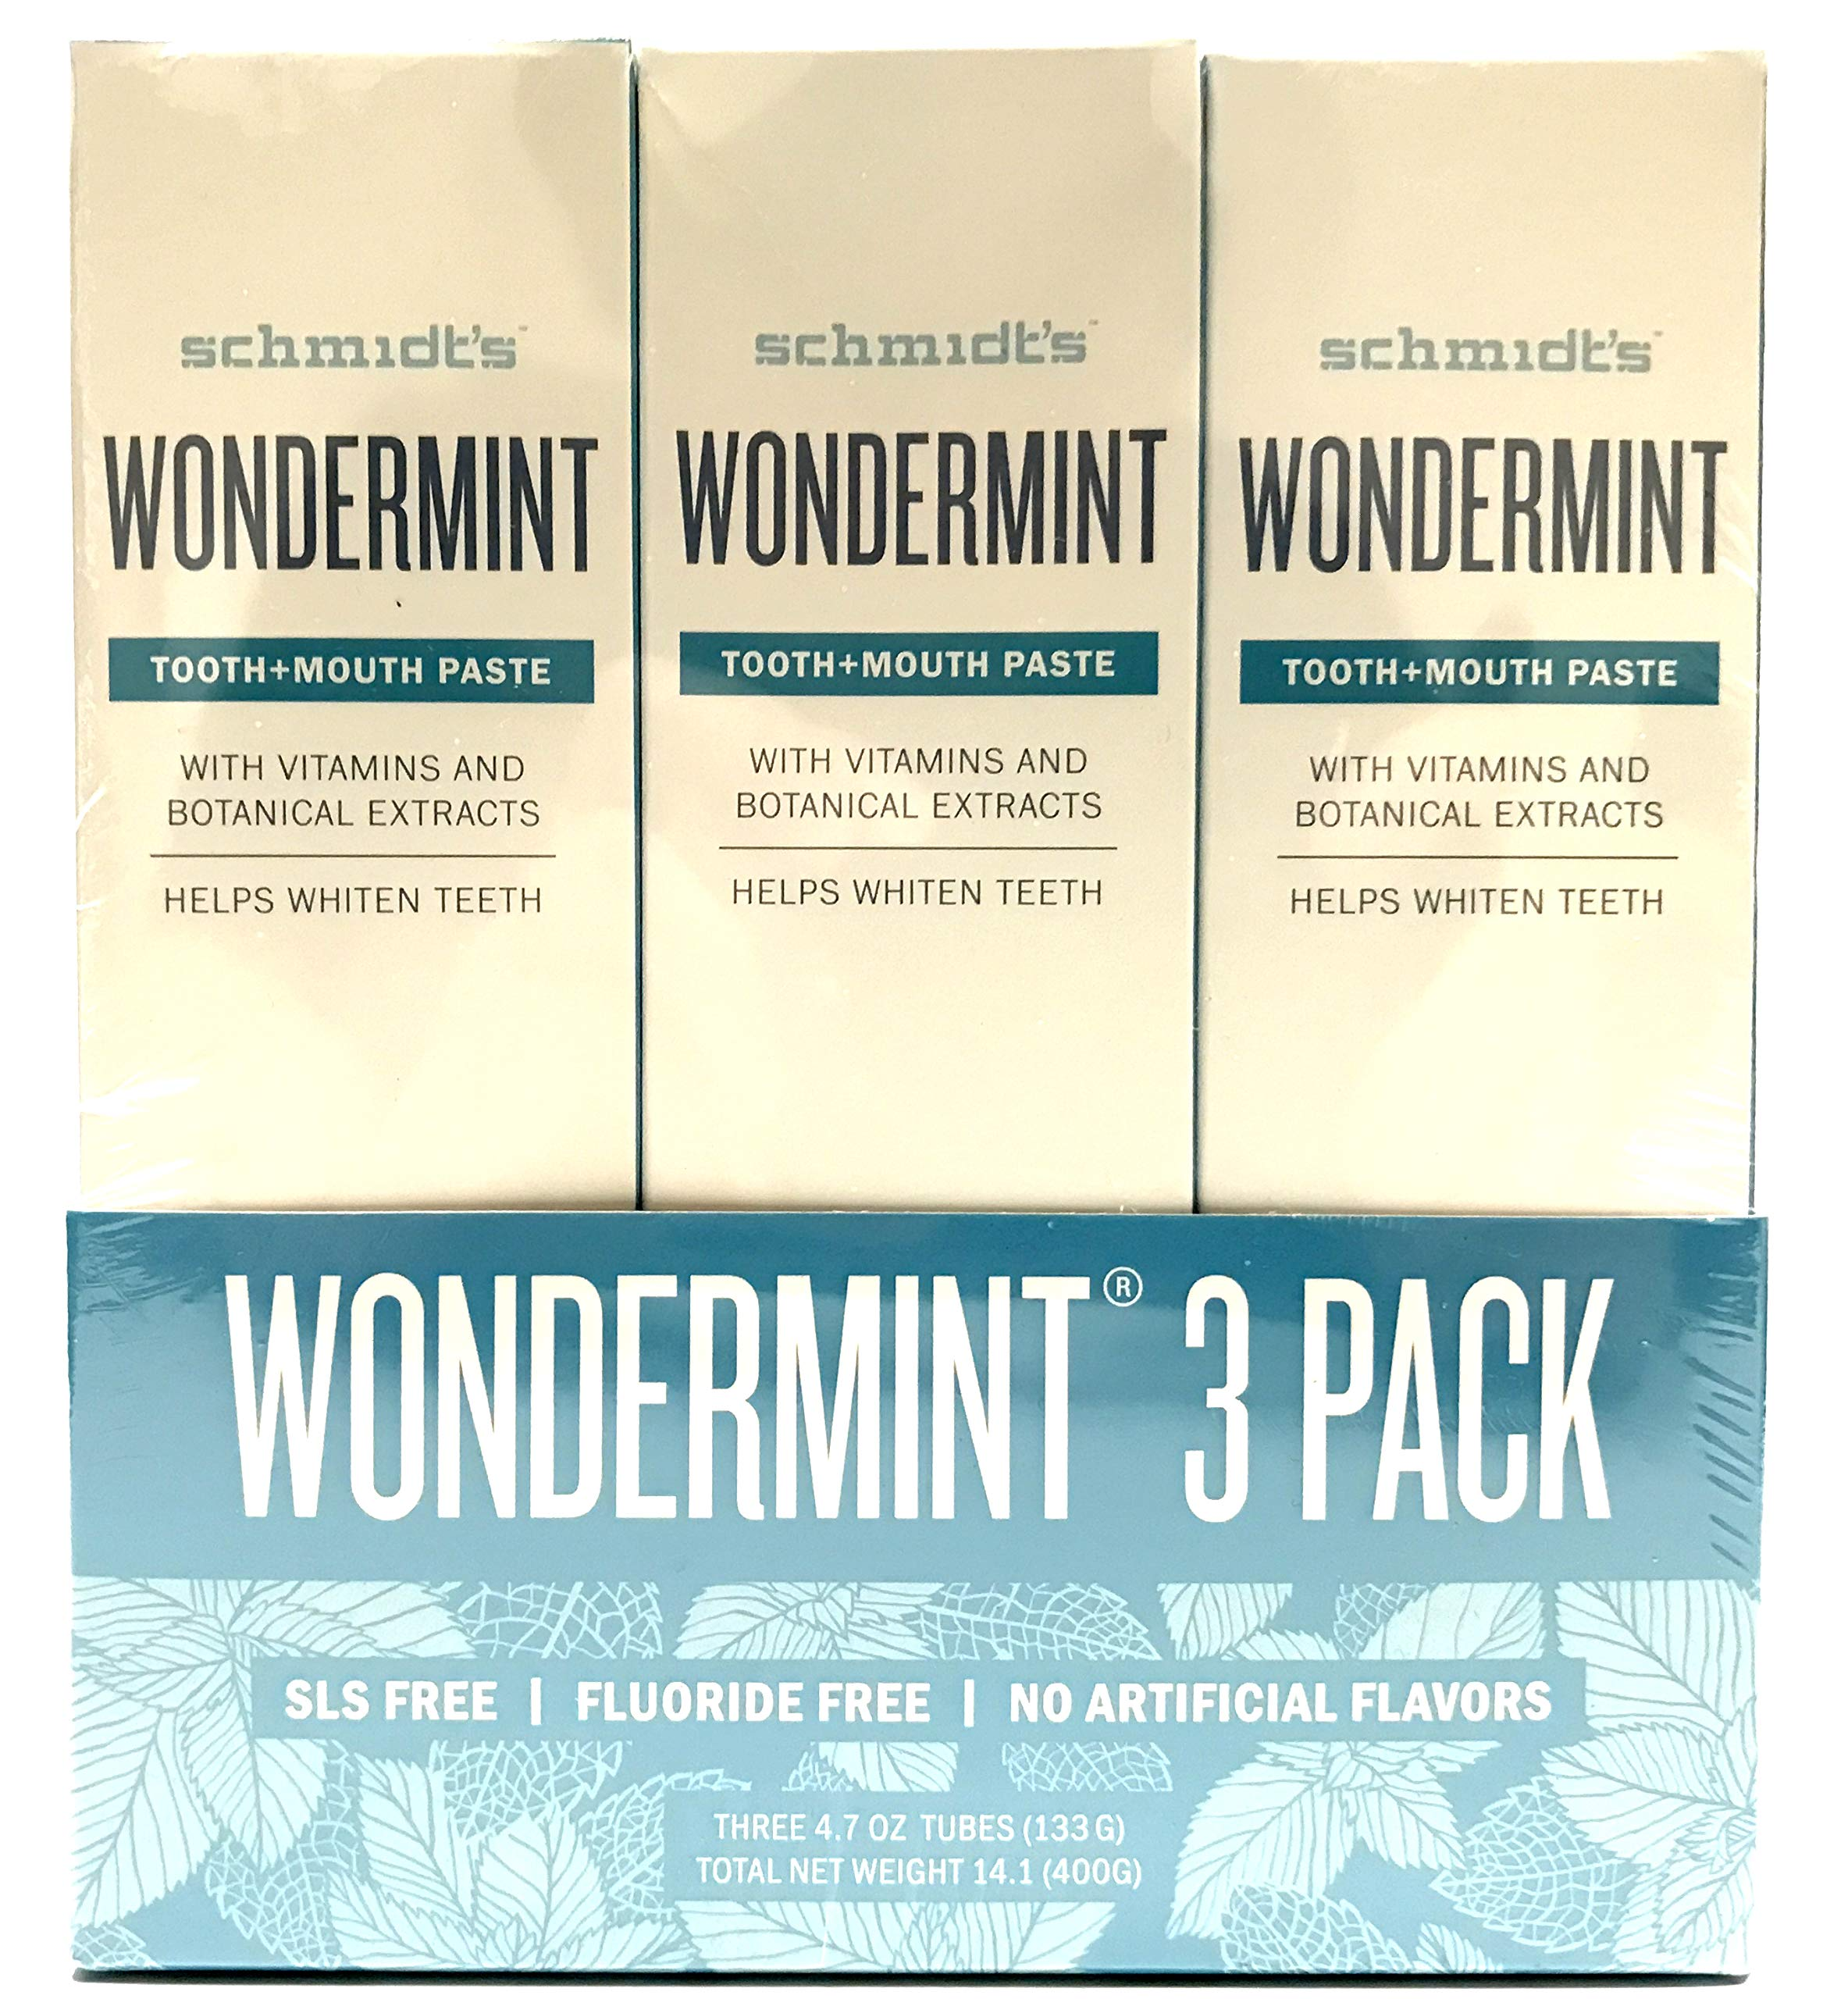 Schmidt's Wondermint Toothpaste, 4.70 oz | Pack of 3